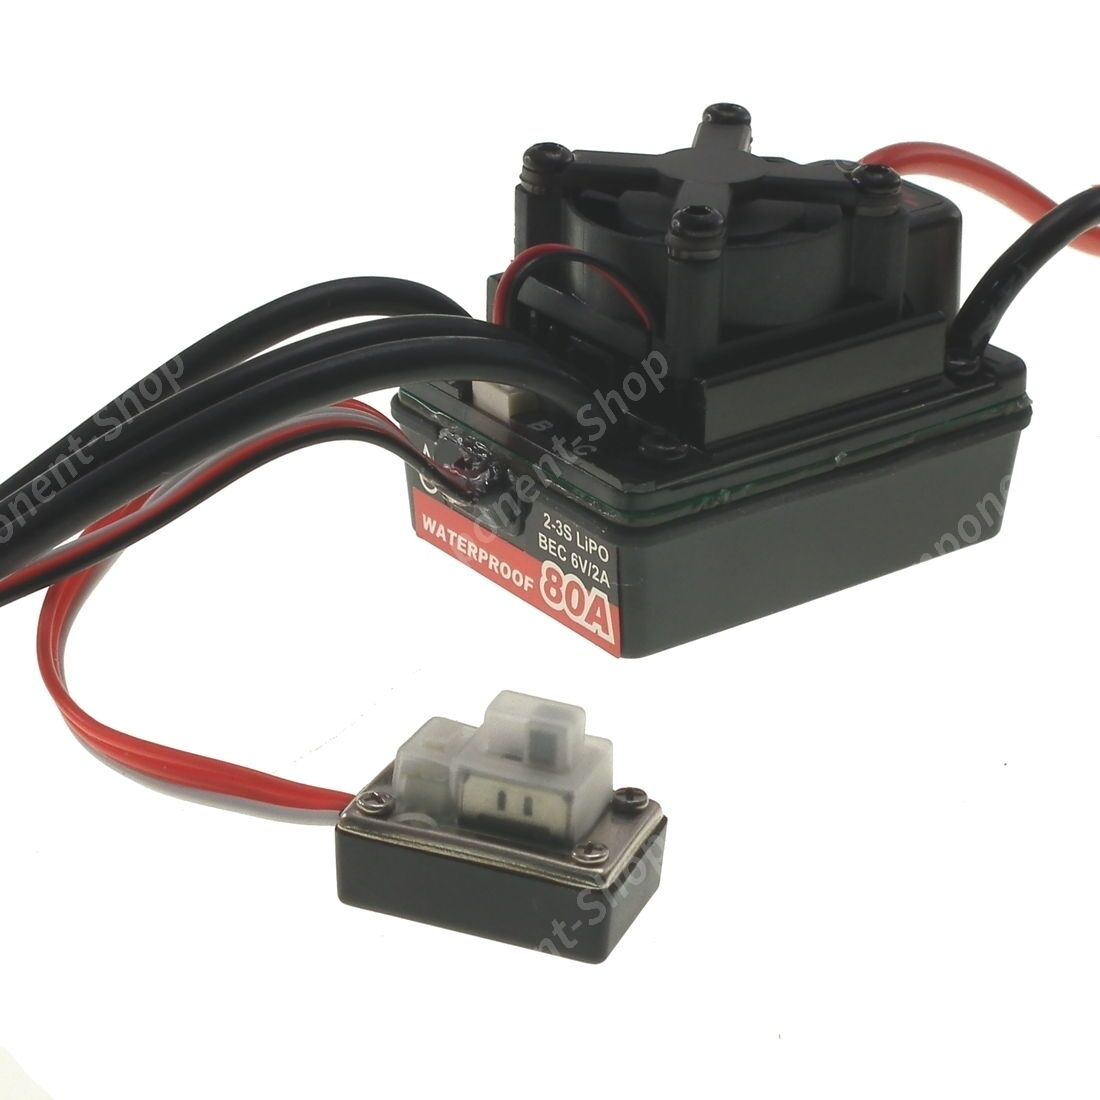 80A Ground Waterproof Brushless Motor Speed Controller (ESC) Perfect for Cars